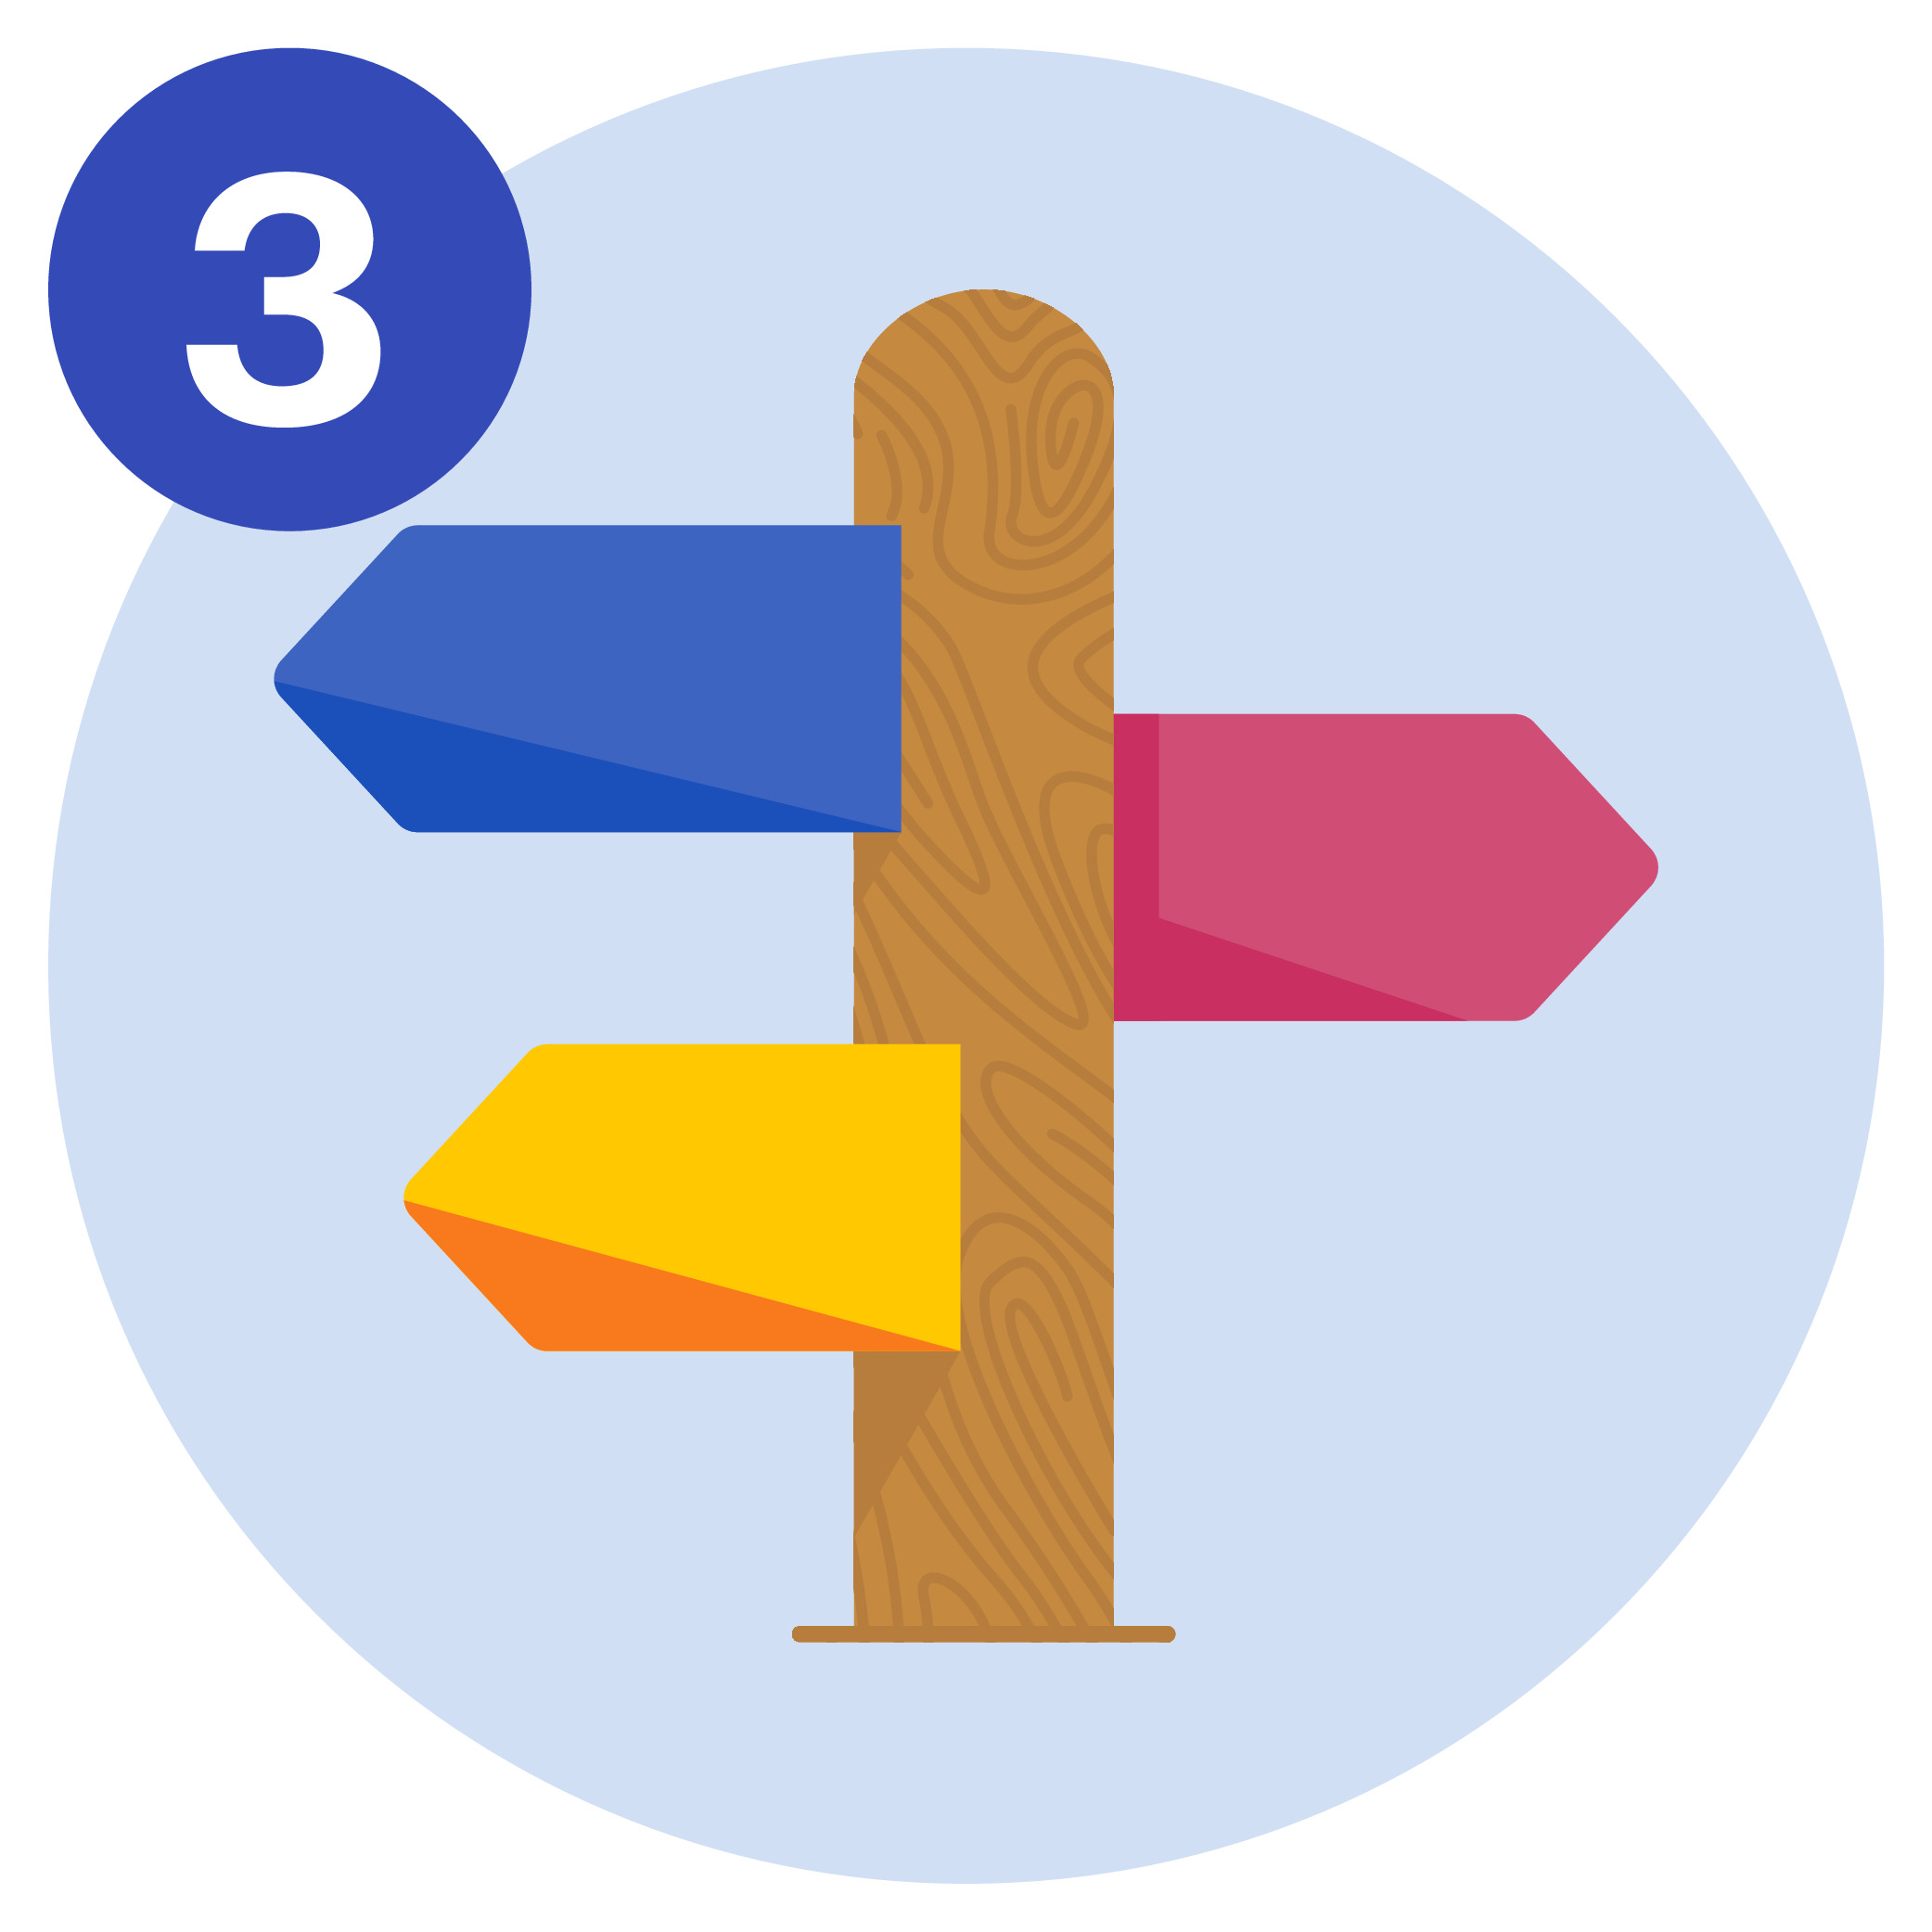 #3 A signpost showing directions to three different destinations.